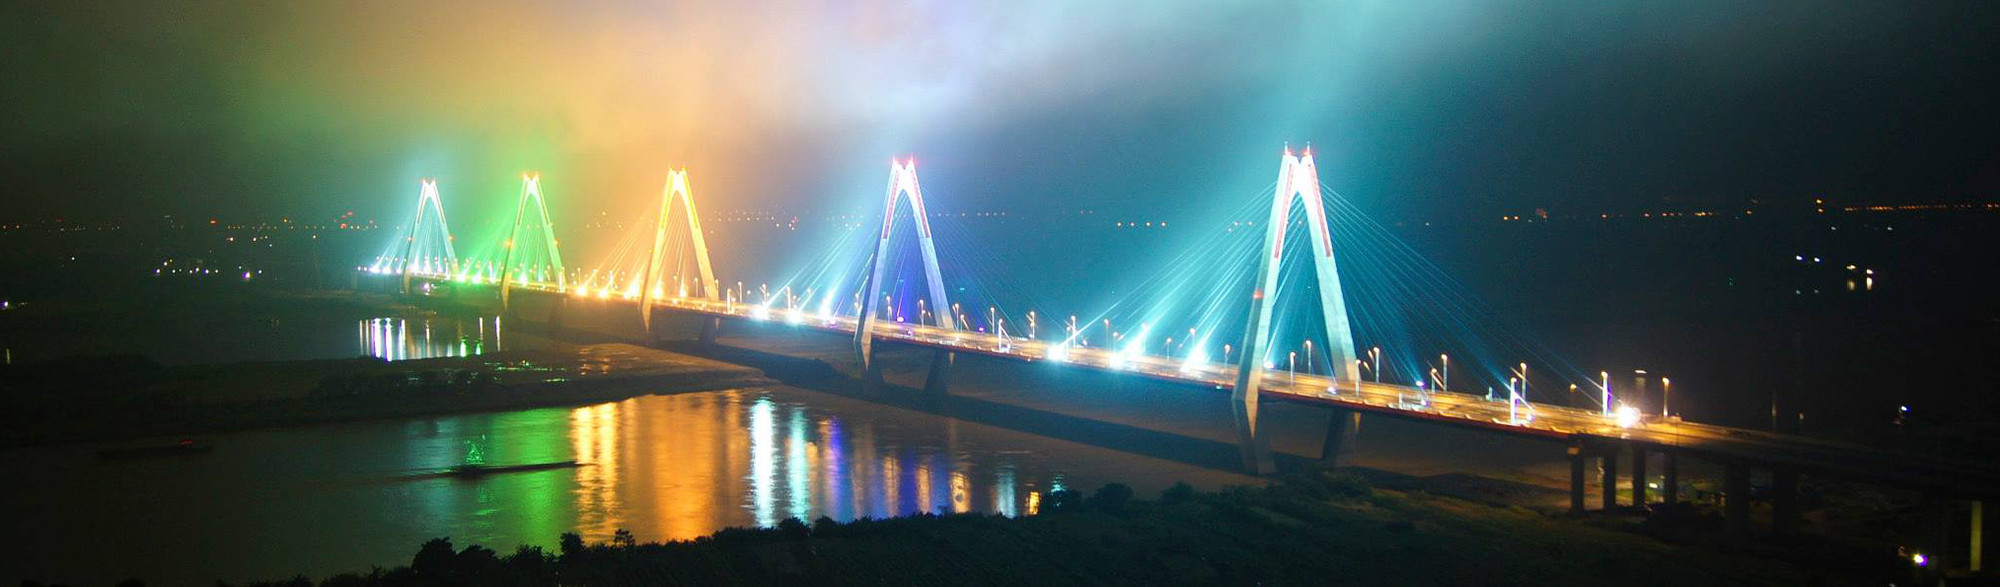 Hanoi Nhật Tân Bridge (Vietnam - Japan Friendship Bridge)